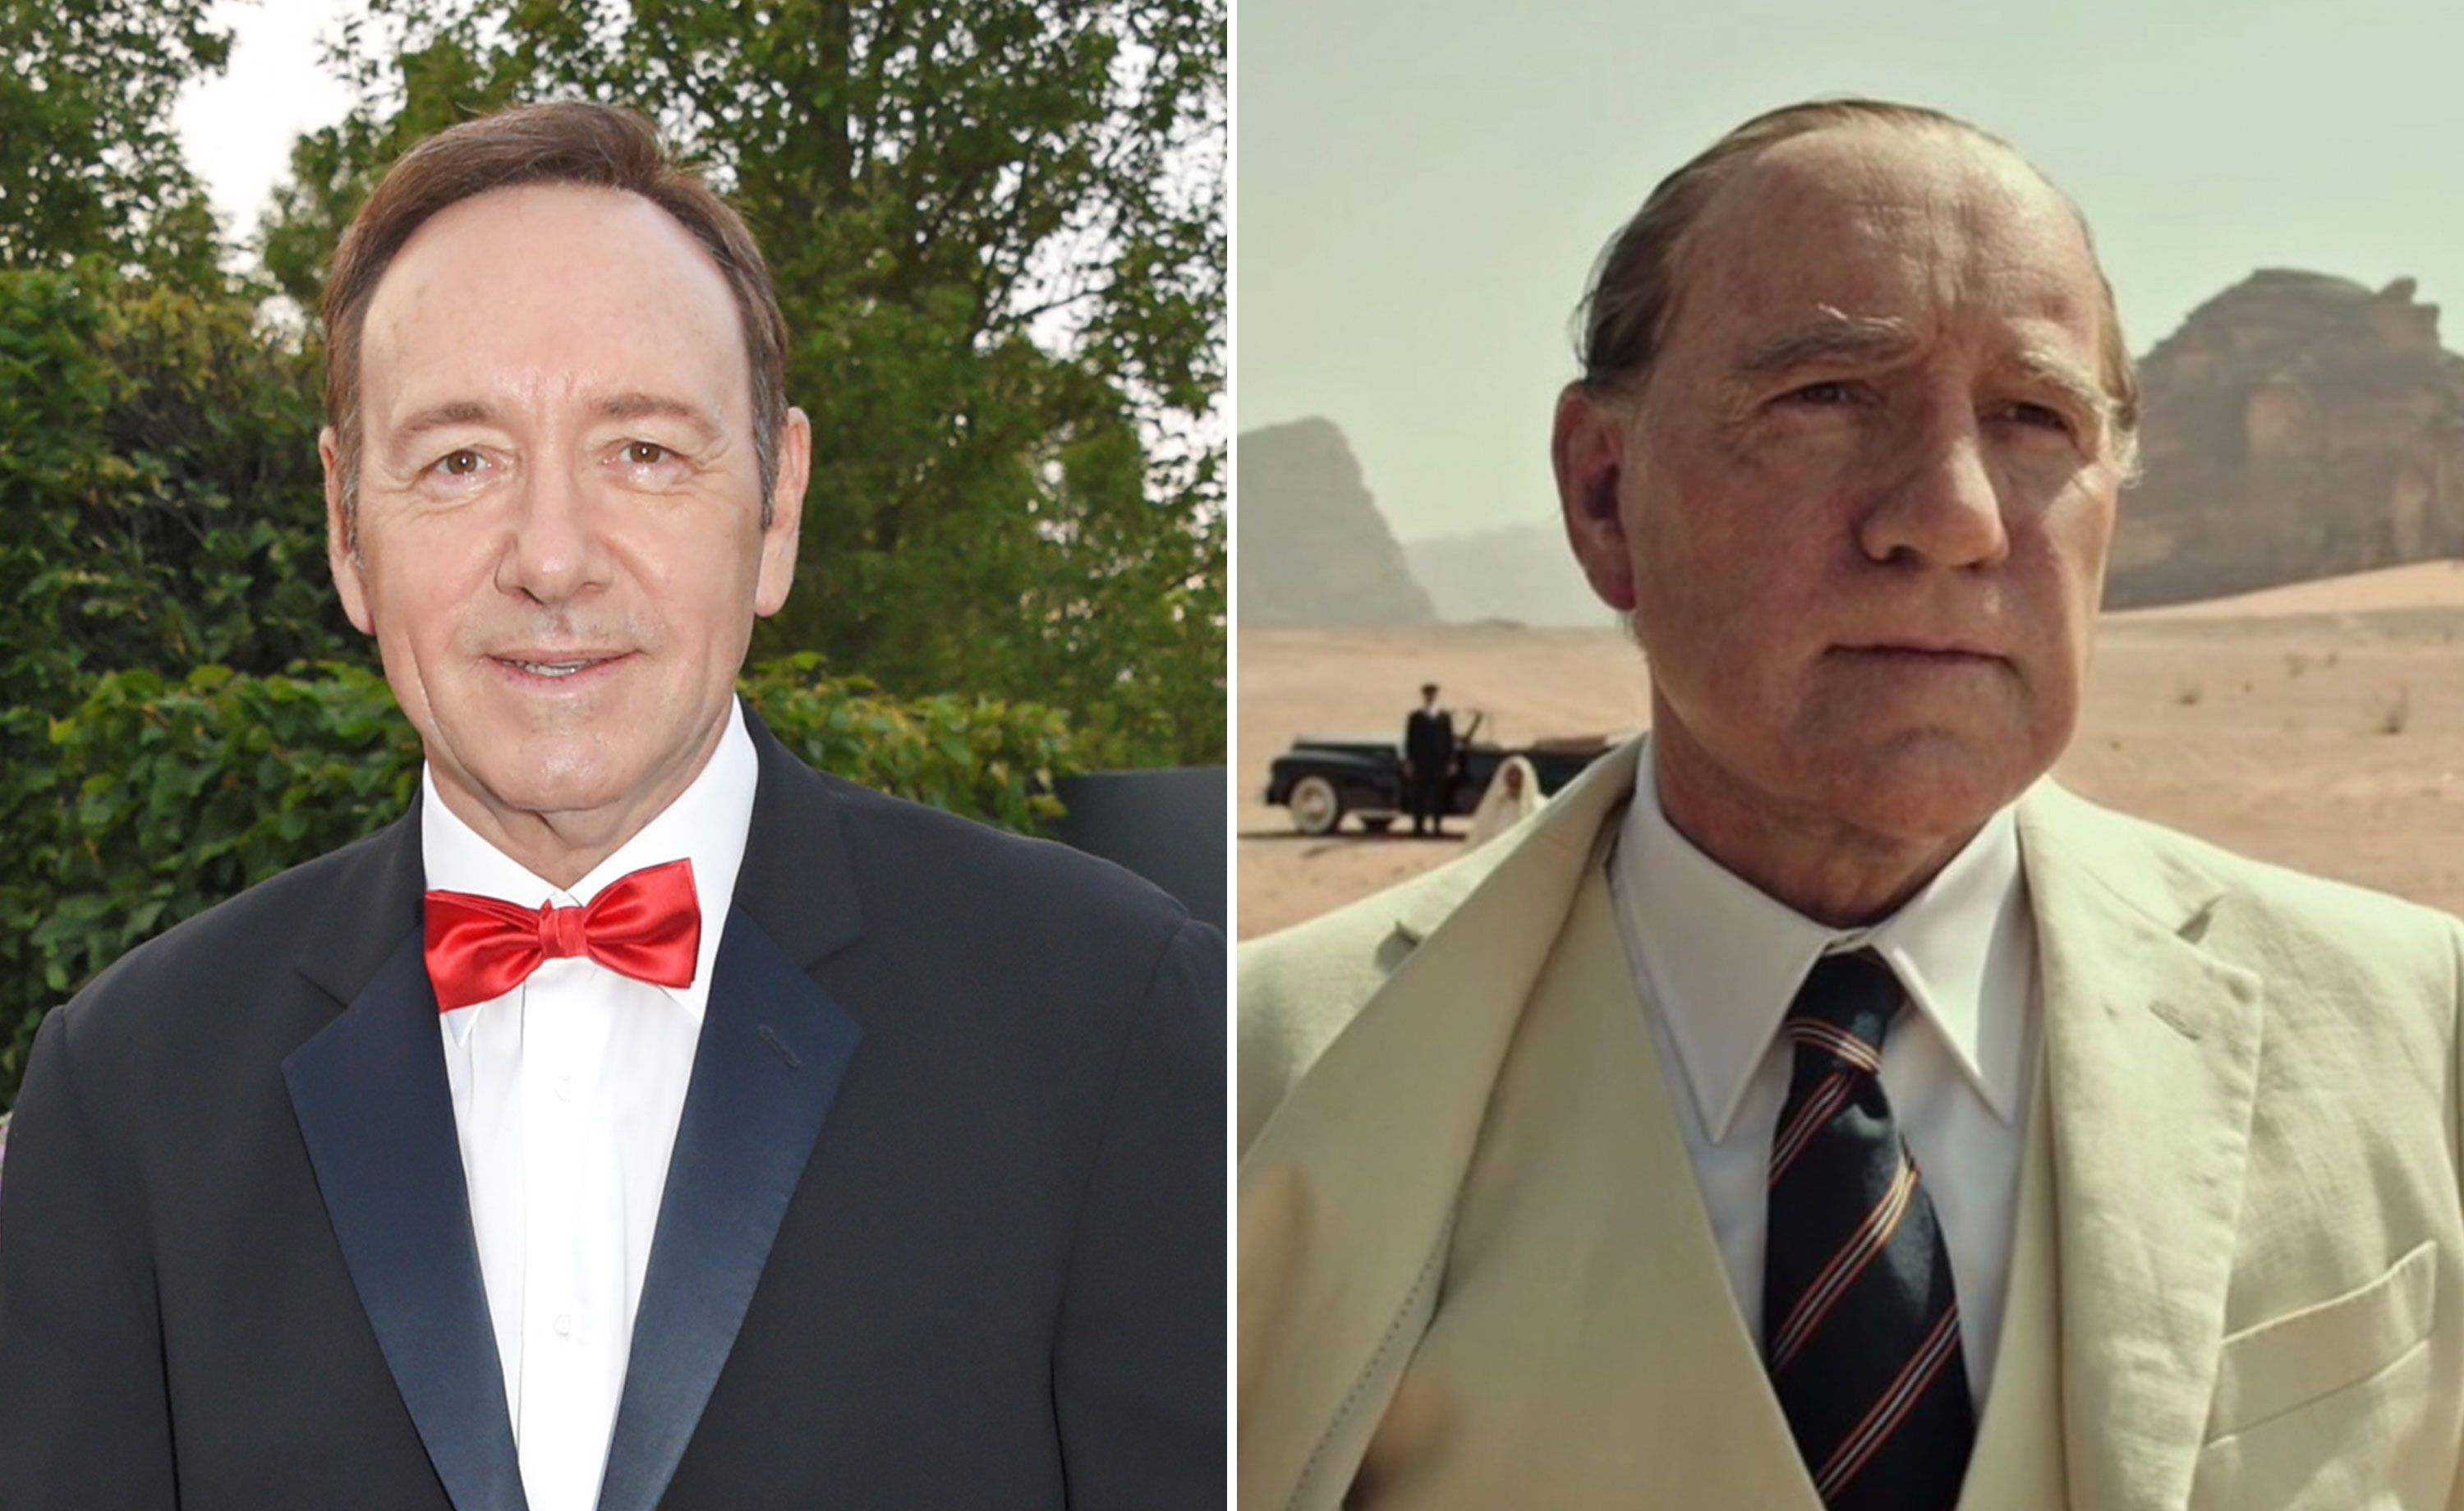 Kevin Spacey Will Be Cut Out Of Already Finished Movie All The Money In The World